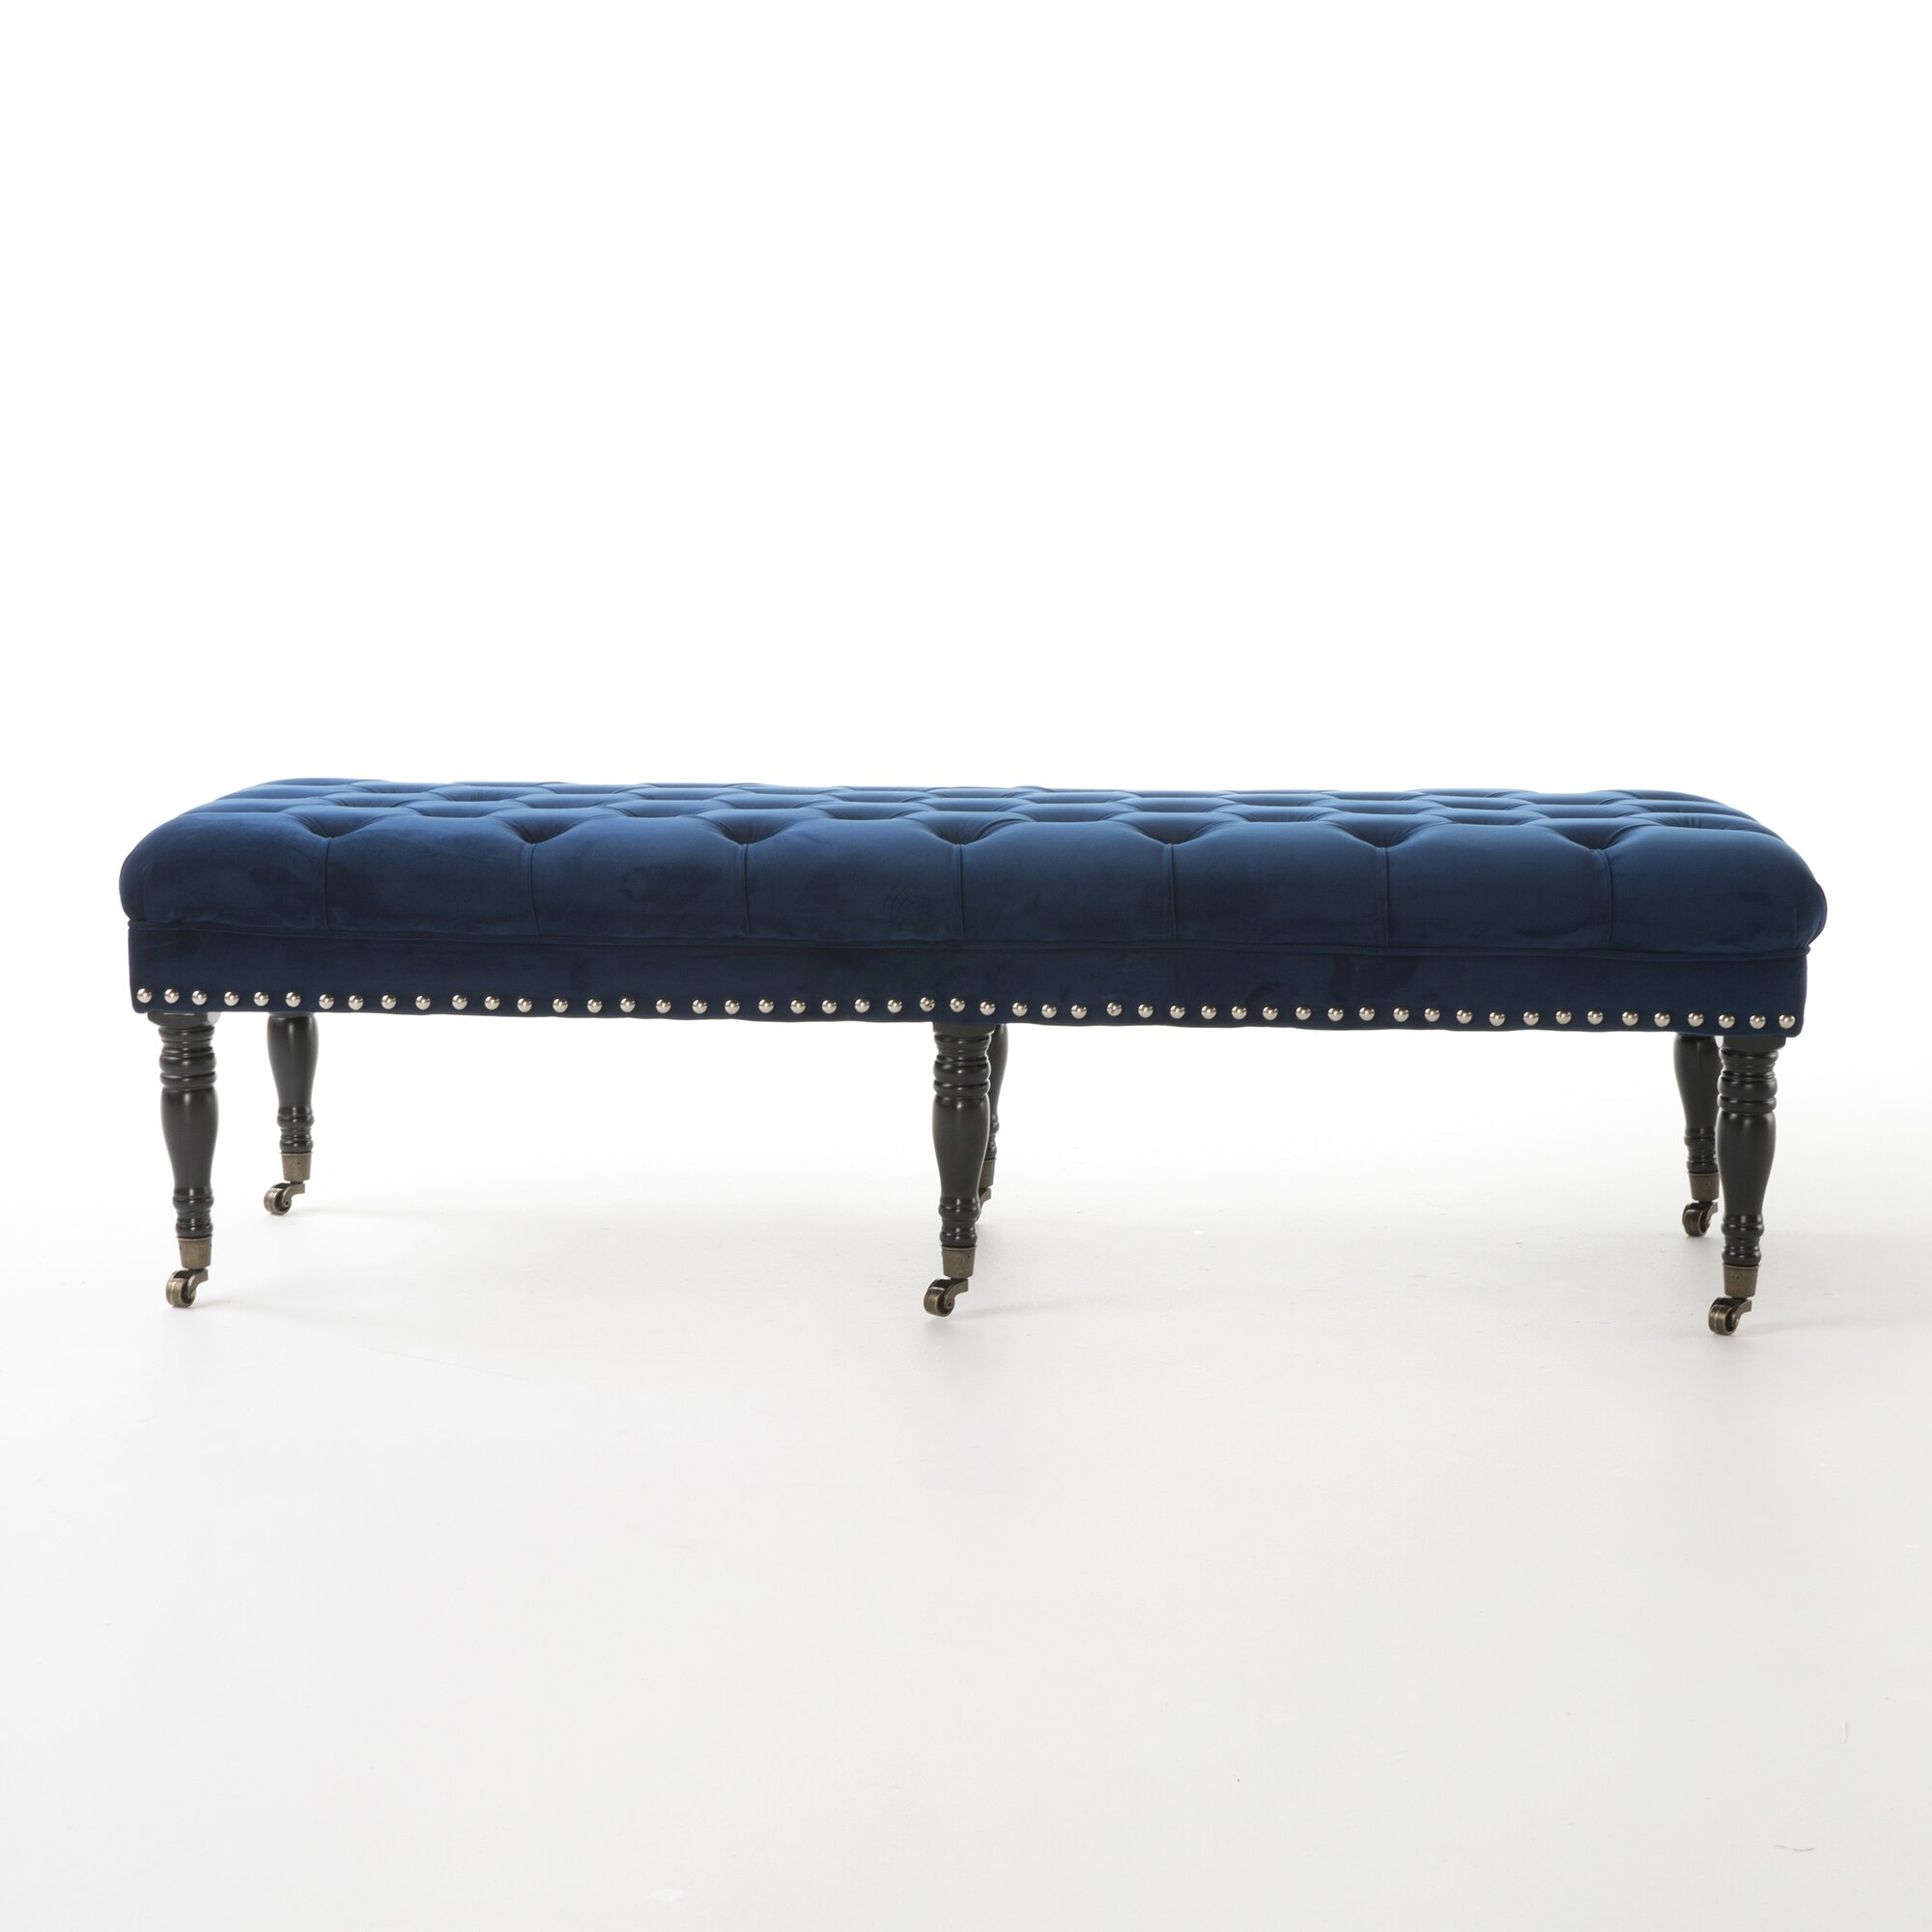 Bedroom bench with arms - Hoxton Velvet Upholstered Bedroom Bench With Caster